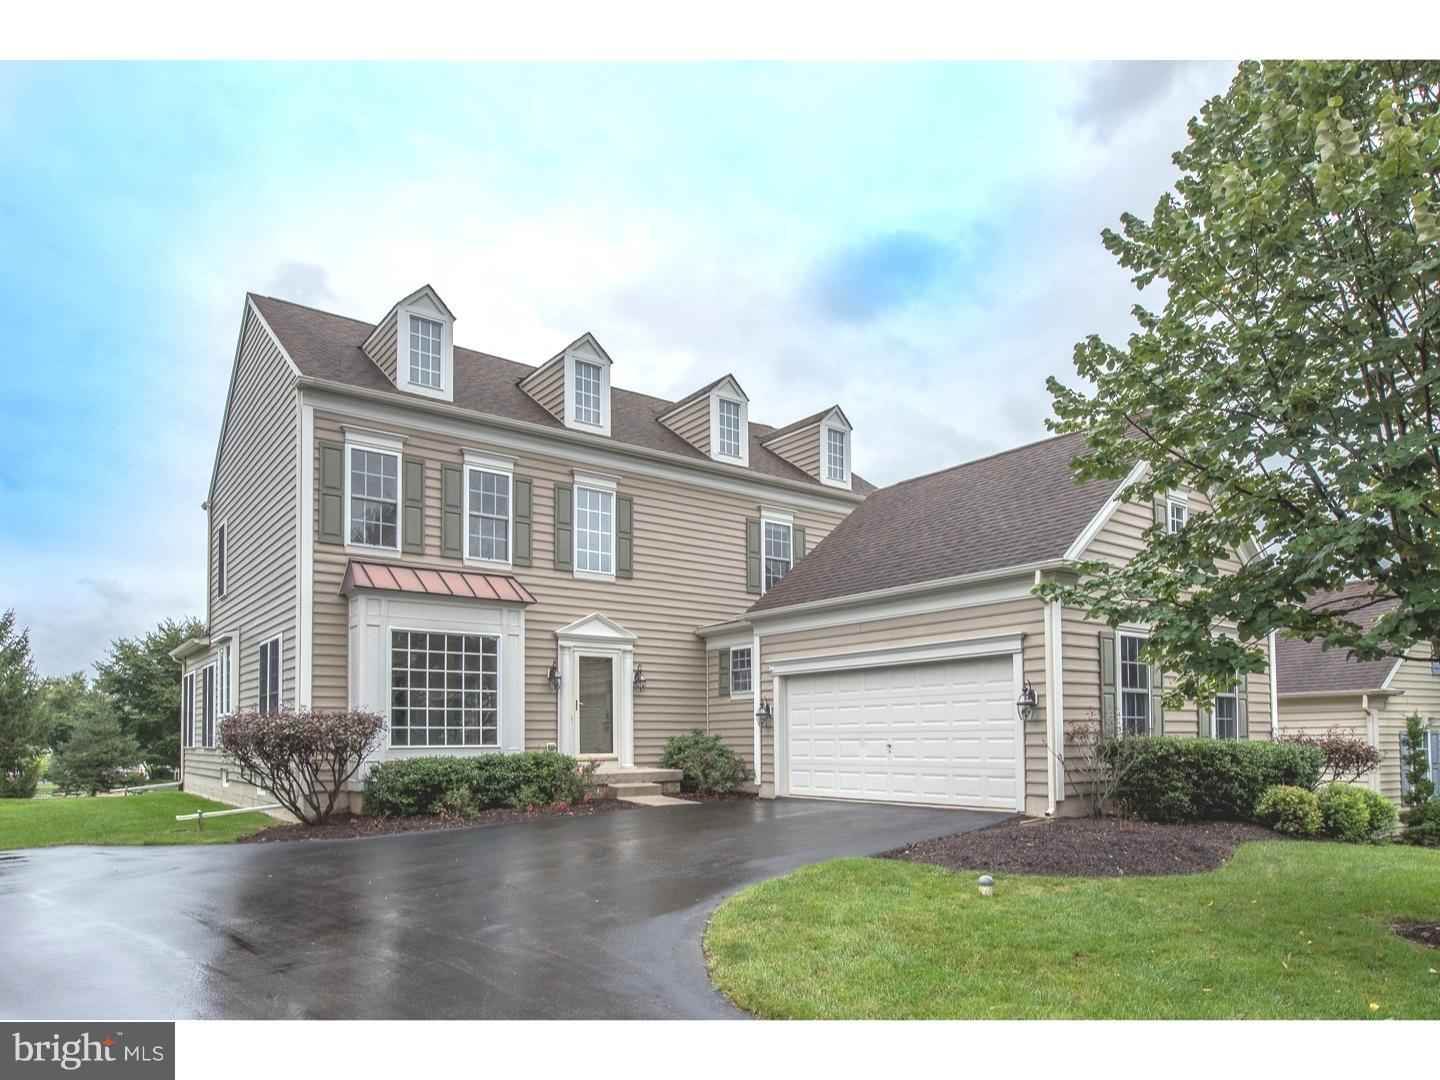 28 Ridings Way West Chester , PA 19382